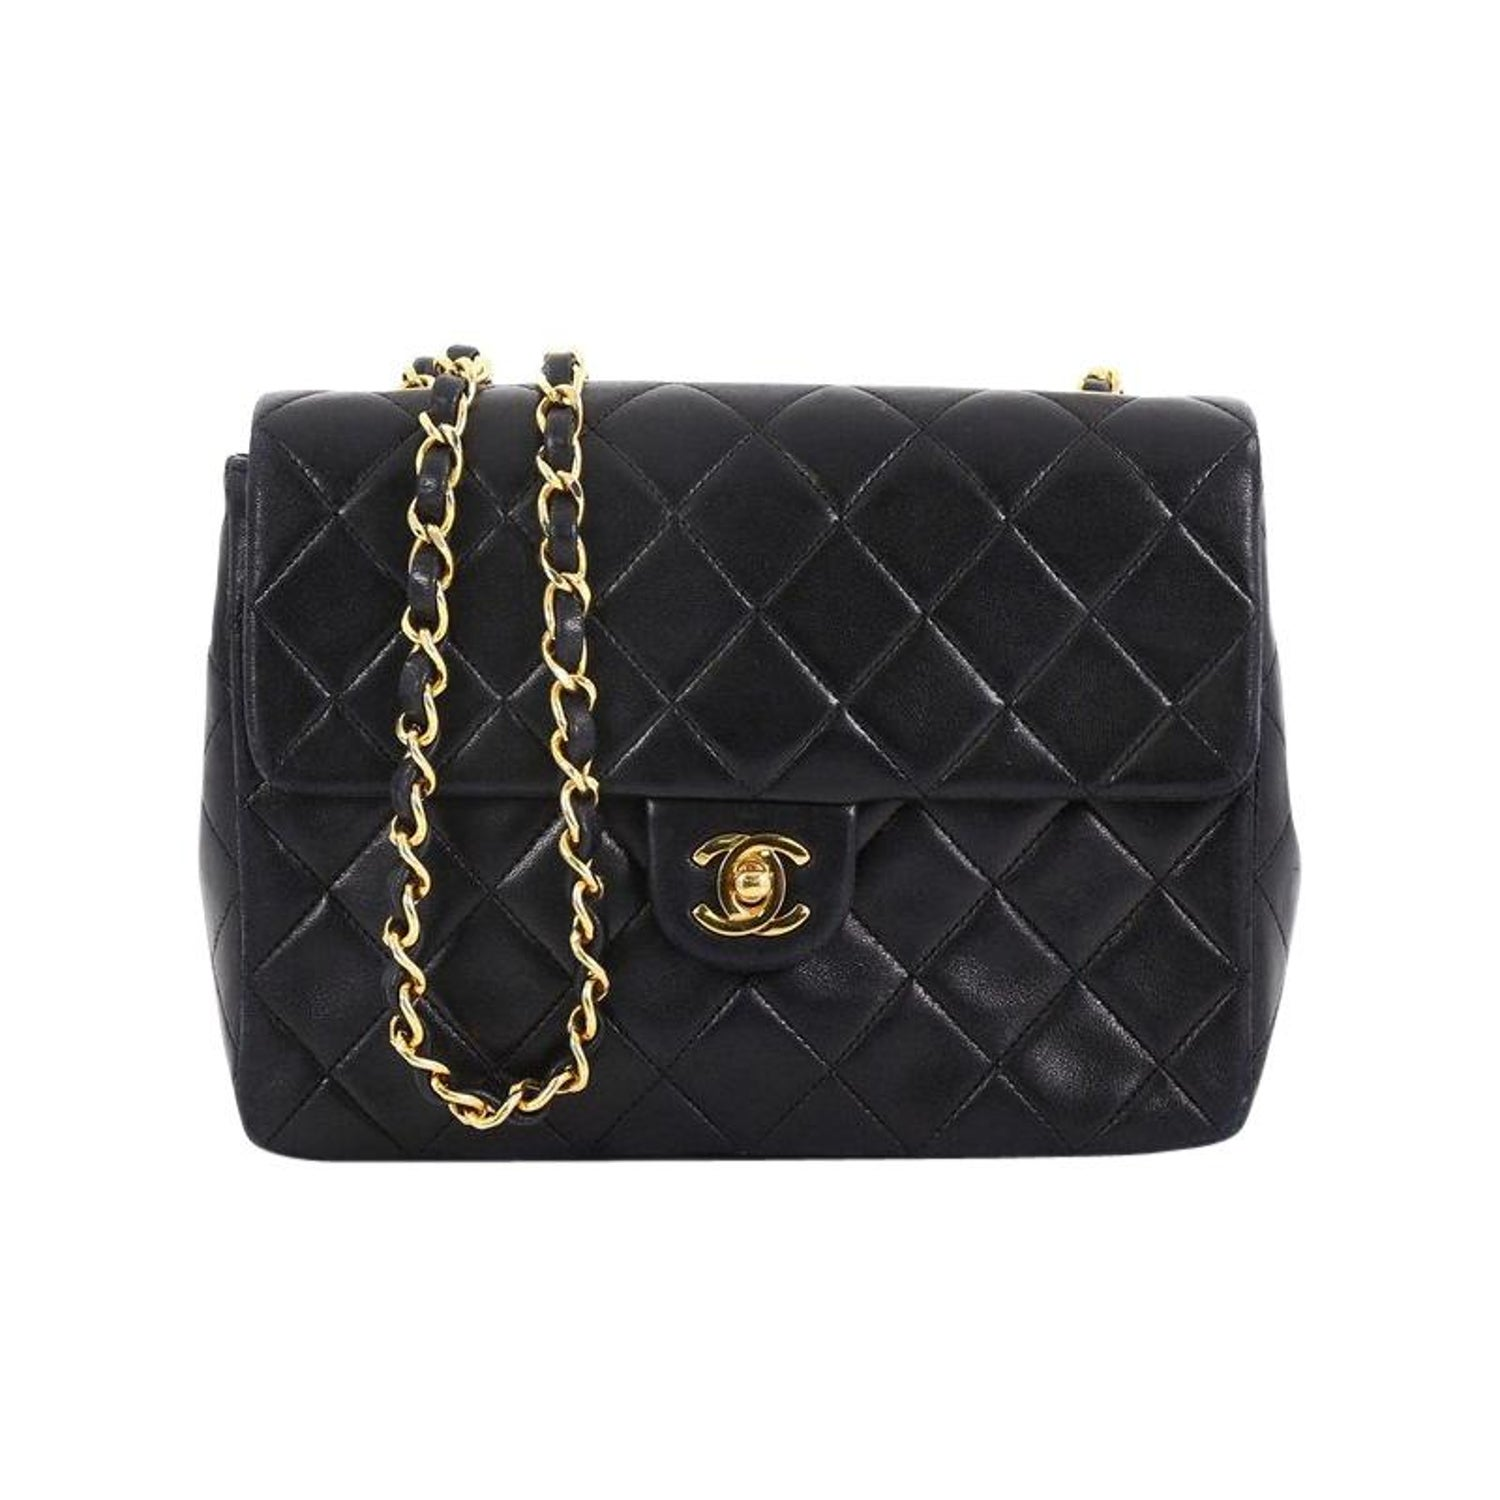 d9f3319fbf8b Chanel Vintage Square Classic Flap Bag Quilted Lambskin Small For Sale at  1stdibs